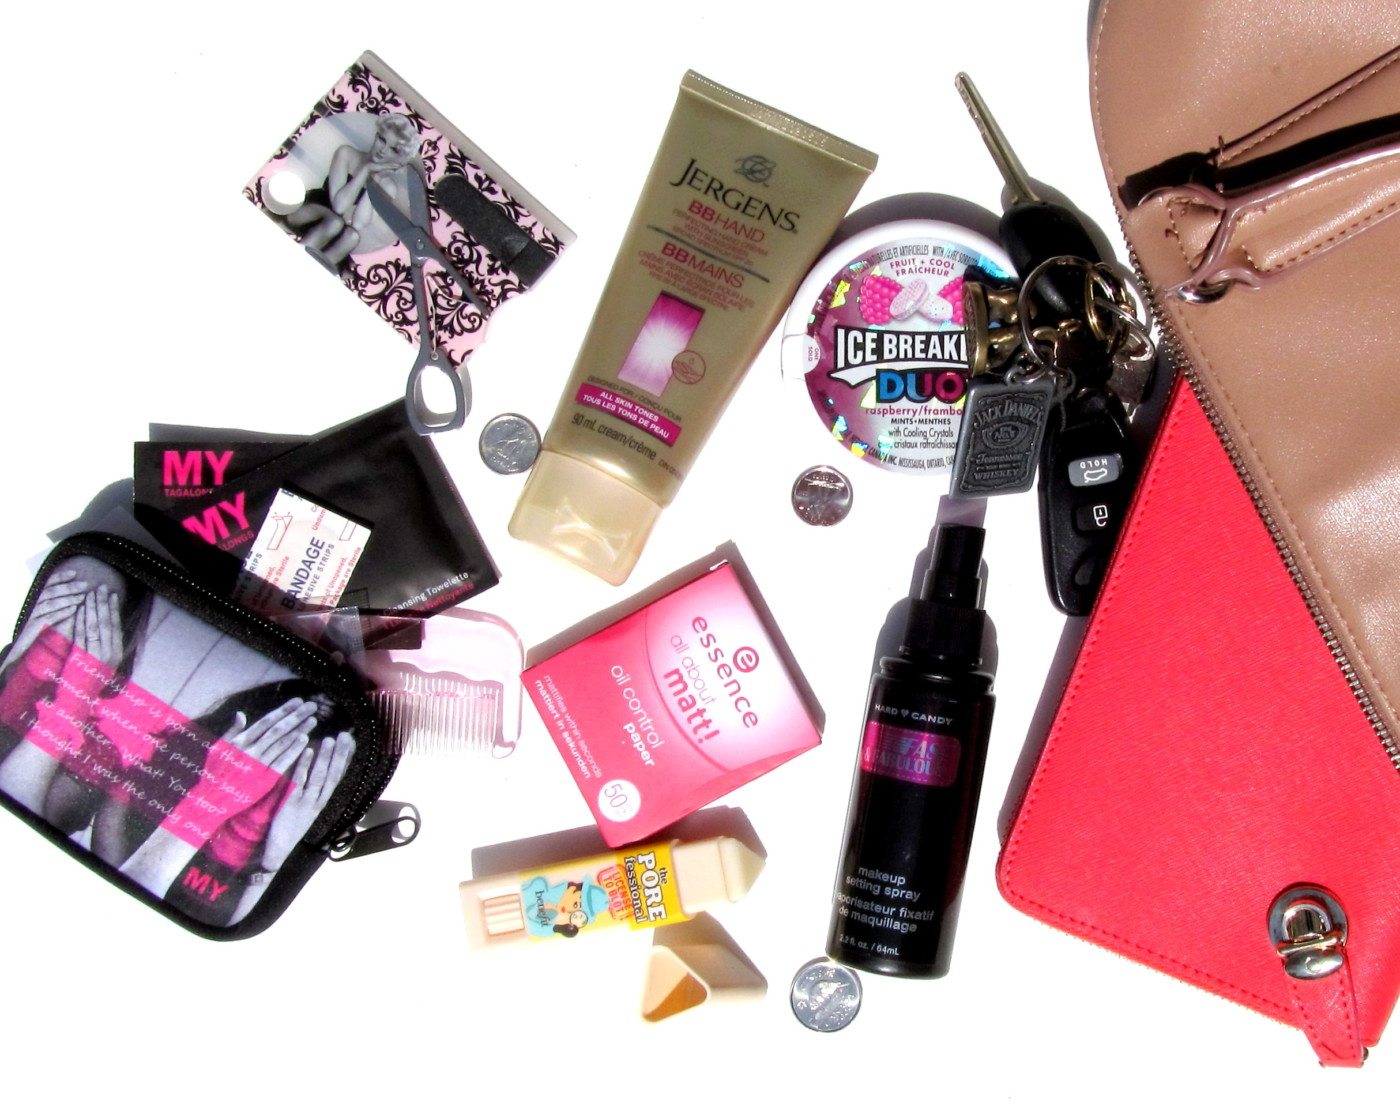 purse essentials, purse must haves, mytagalongs, mytagalong survival kit, jergens bb hands, jergens bb hand cream, bb cream for hands, best hand lotion, hand cream with spf, essence  all about matt, essence oil control paper, benefit the porefessional, benefit the porefessional license to blot, benefit oil control stick, hard candy fast & fabulous, hard candy makeup setting spray, what should i keep in my purse for emergencies